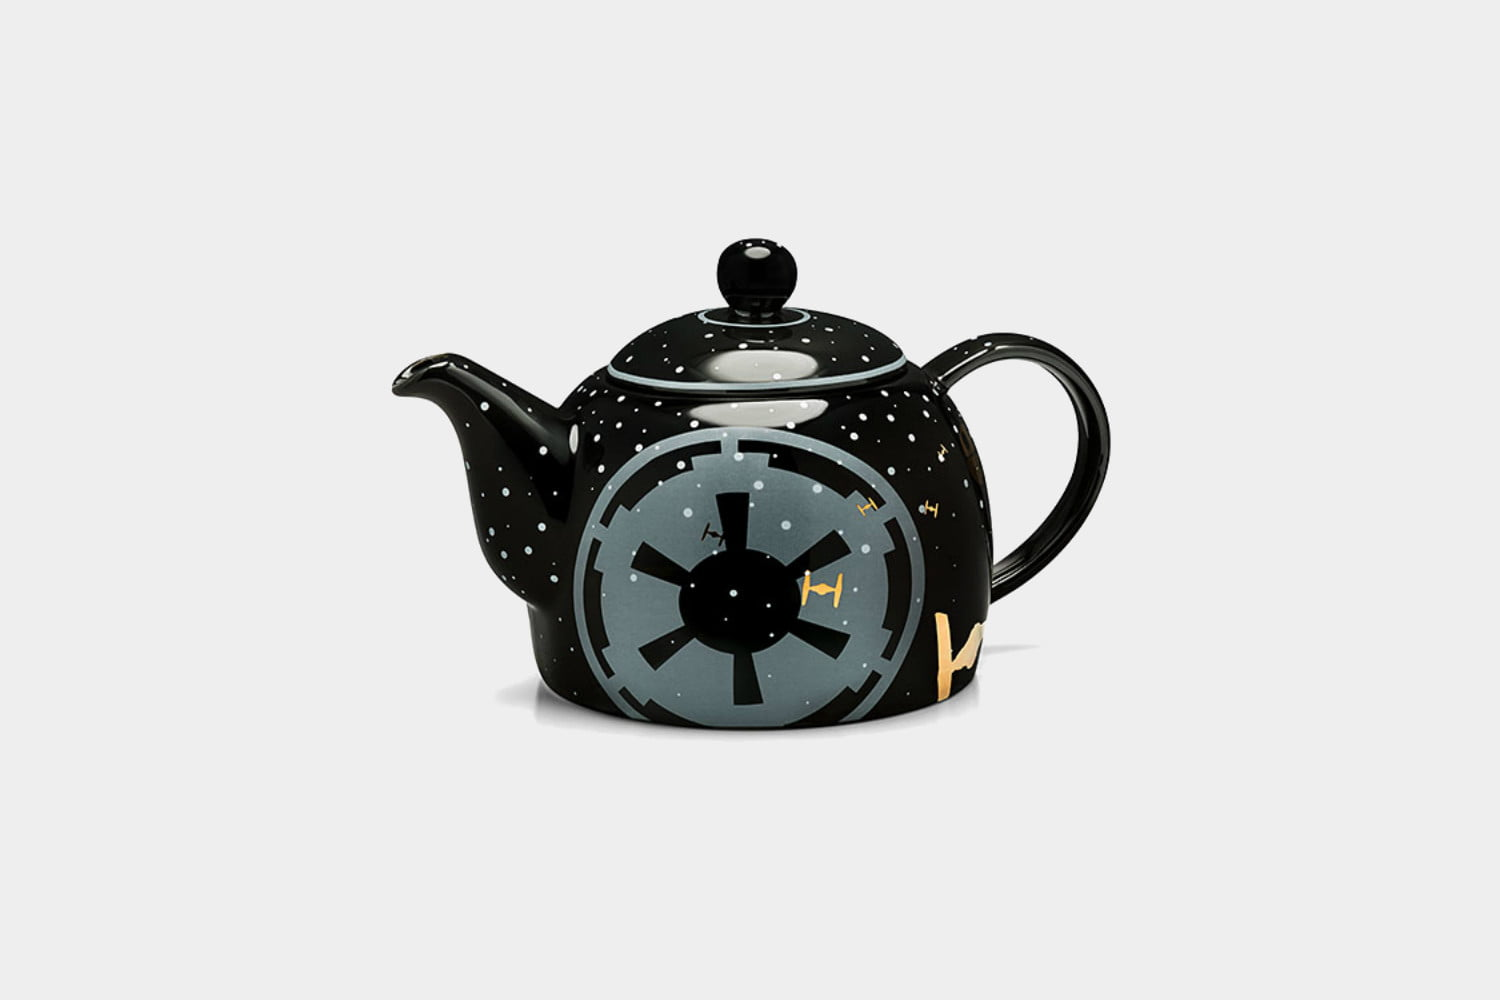 Check Out the Most Amazing Star Wars Home Decor on This Planet     best star wars home decor merchandise merch teapot